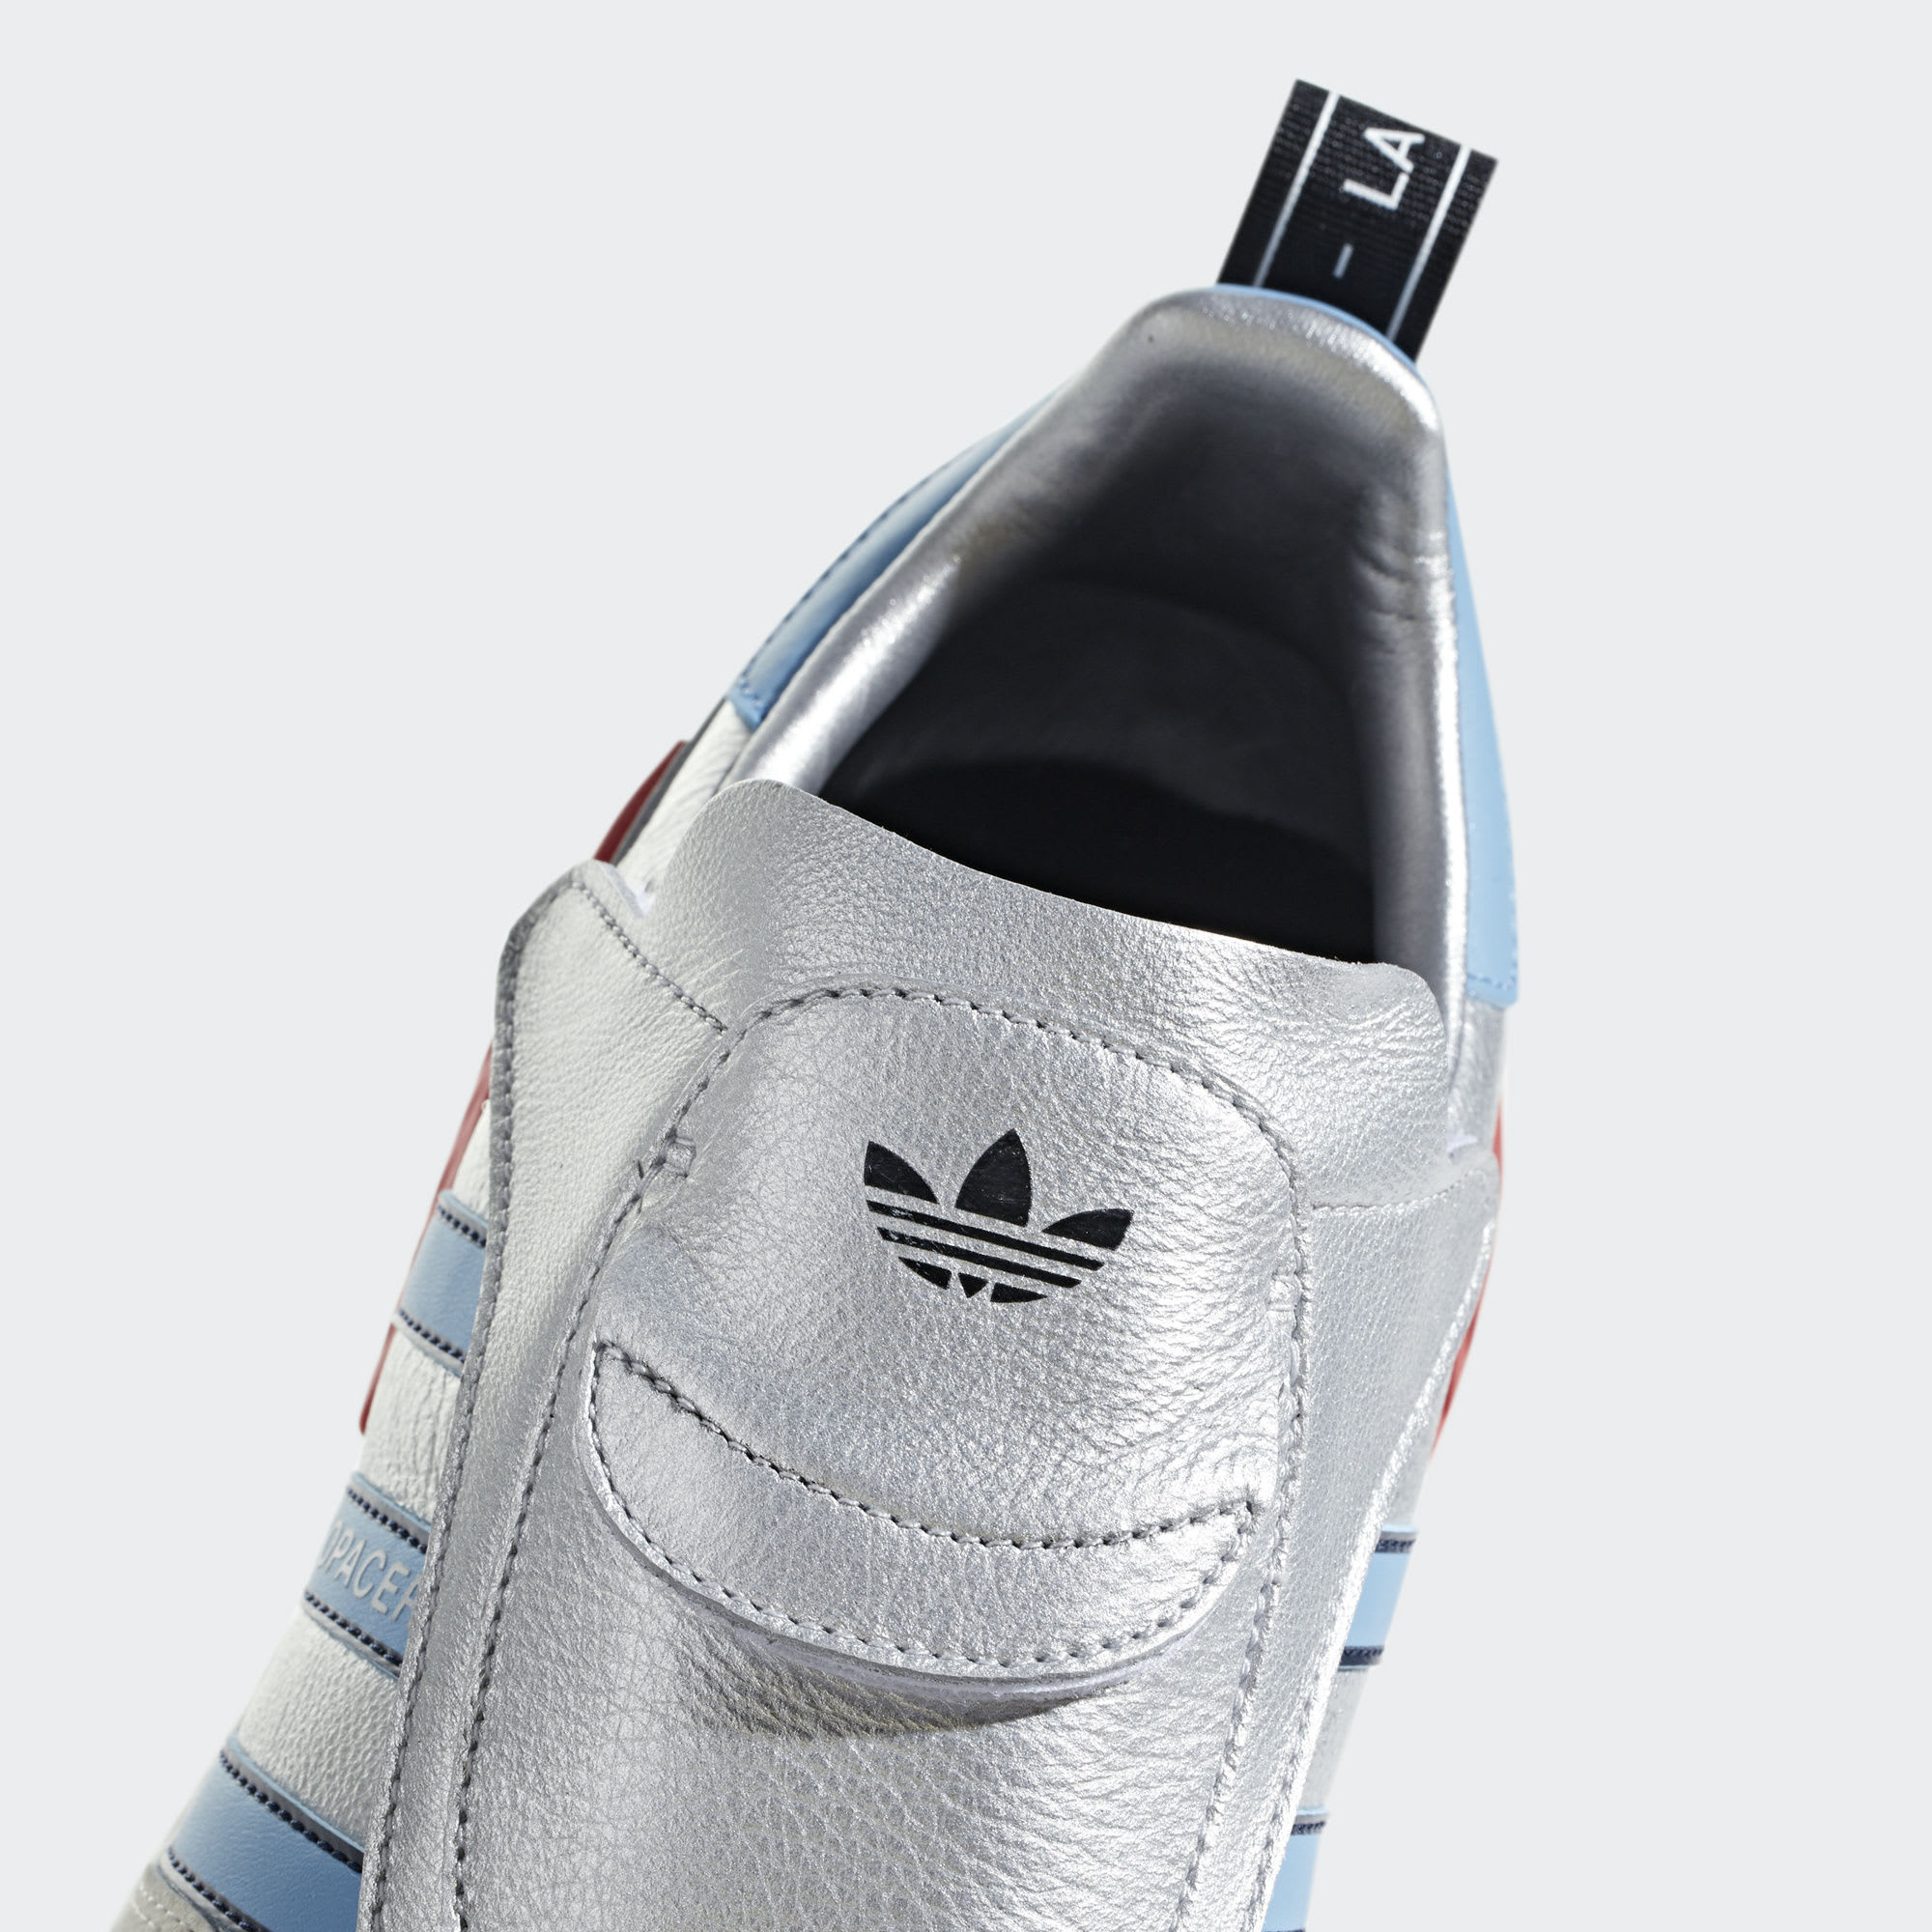 Adidas Micropacer NMD R1 Silver Release Date G26778 Tongue